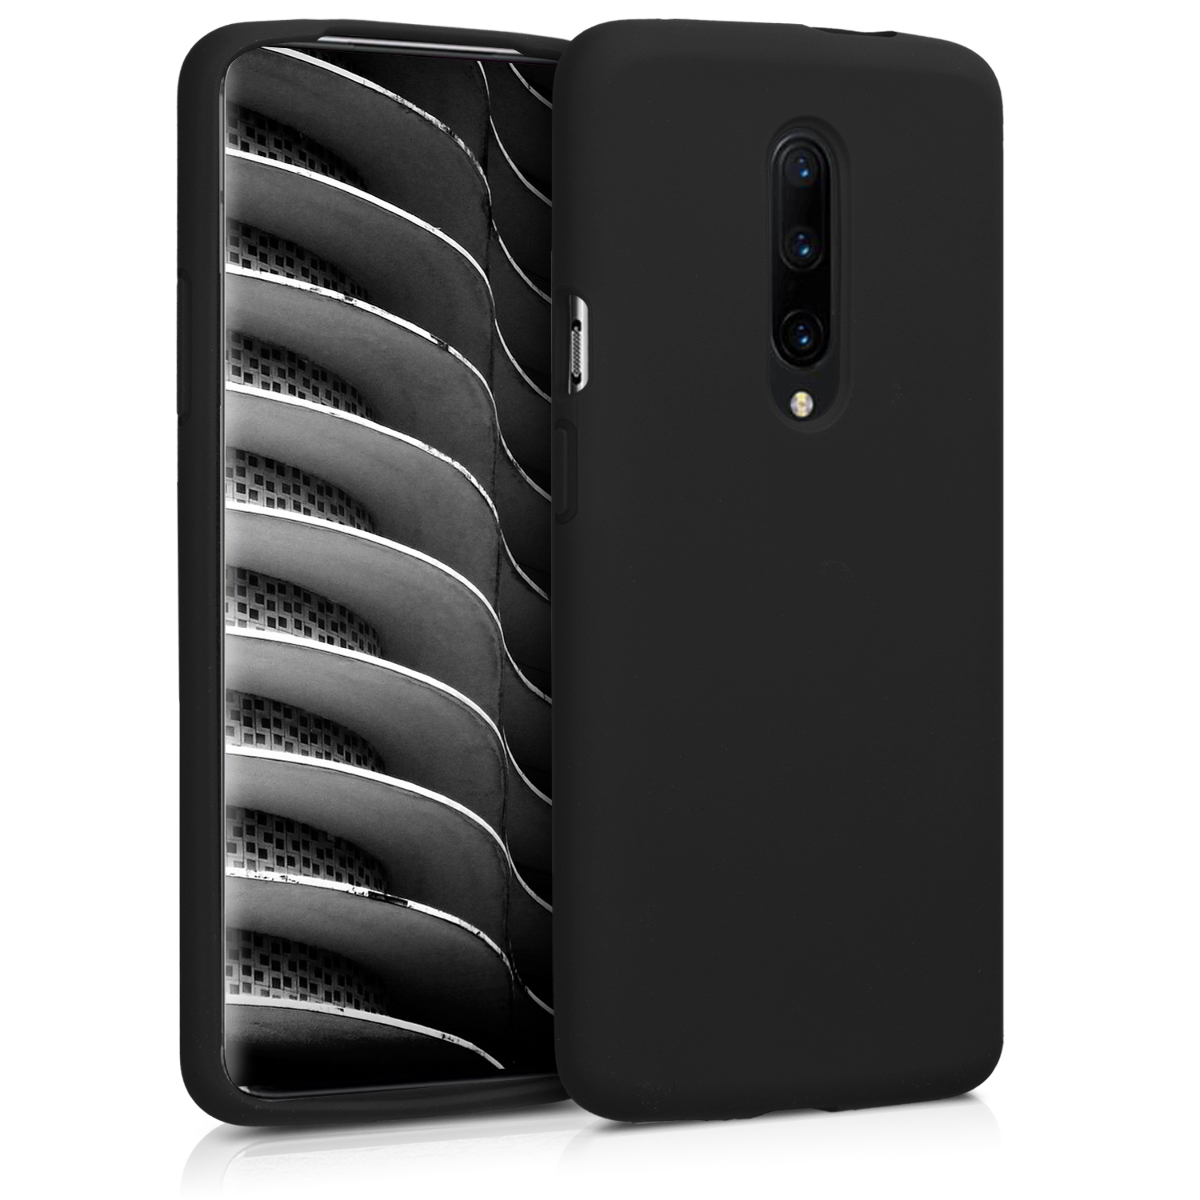 KW Θήκη Σιλικόνης OnePlus 7 Pro - Soft Flexible Rubber Protective Cover - Black (48595.01)